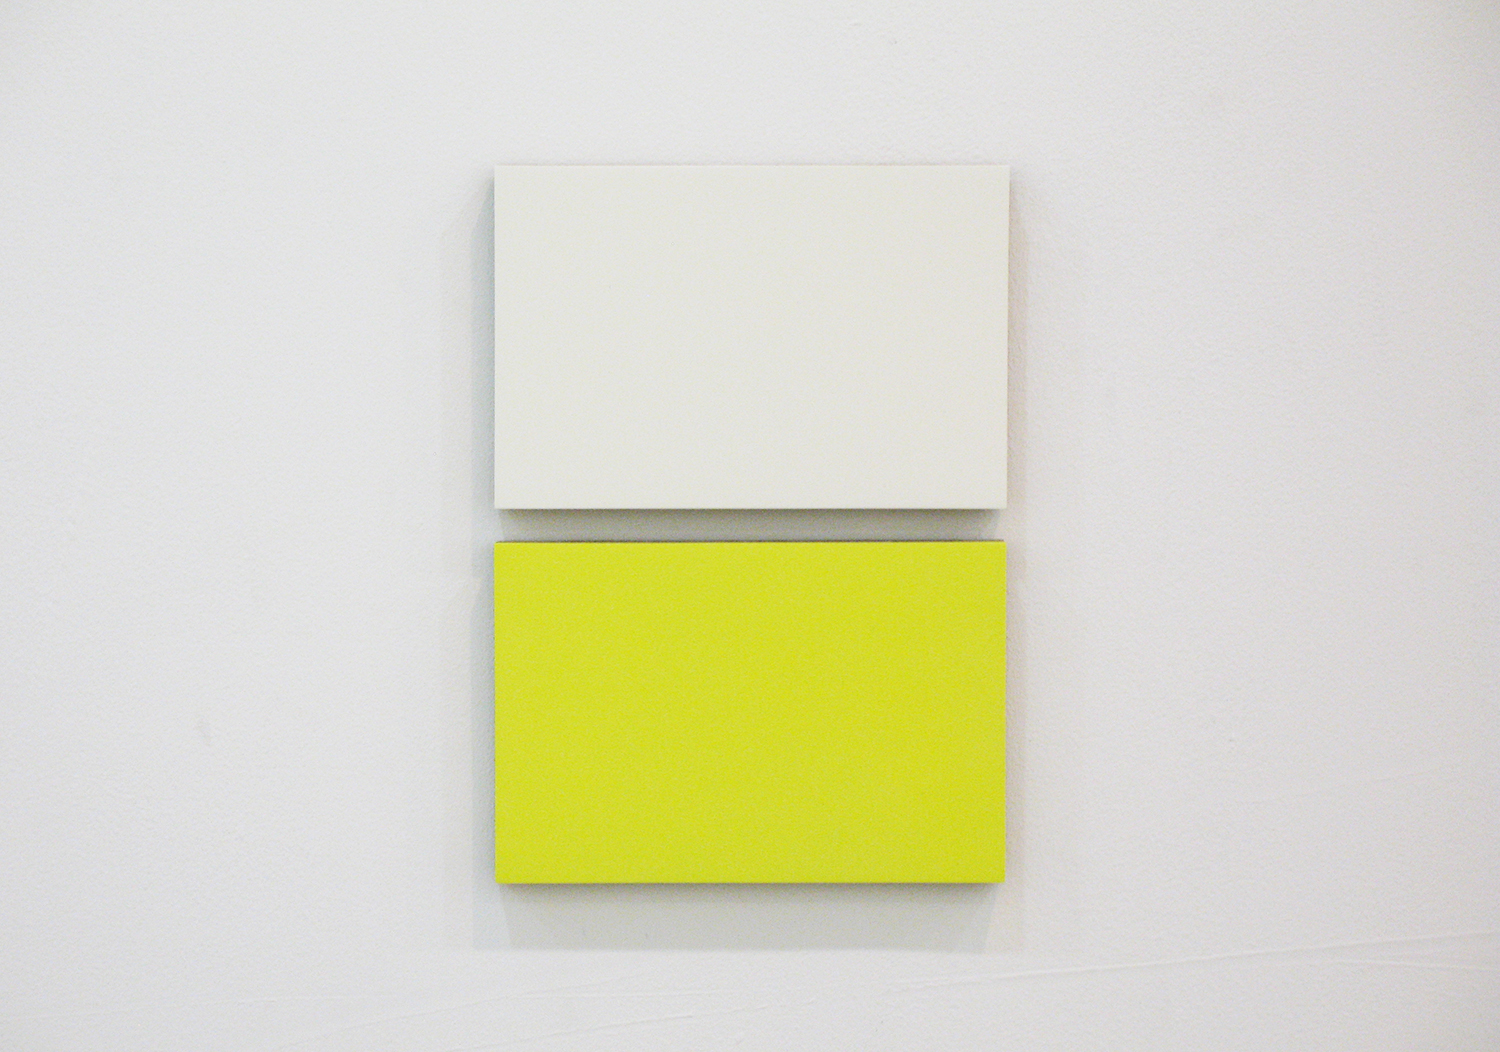 2col-09(white & yellow)casein, pigment on canvas & aluminum (2 parts, 10 x 15 cm each)